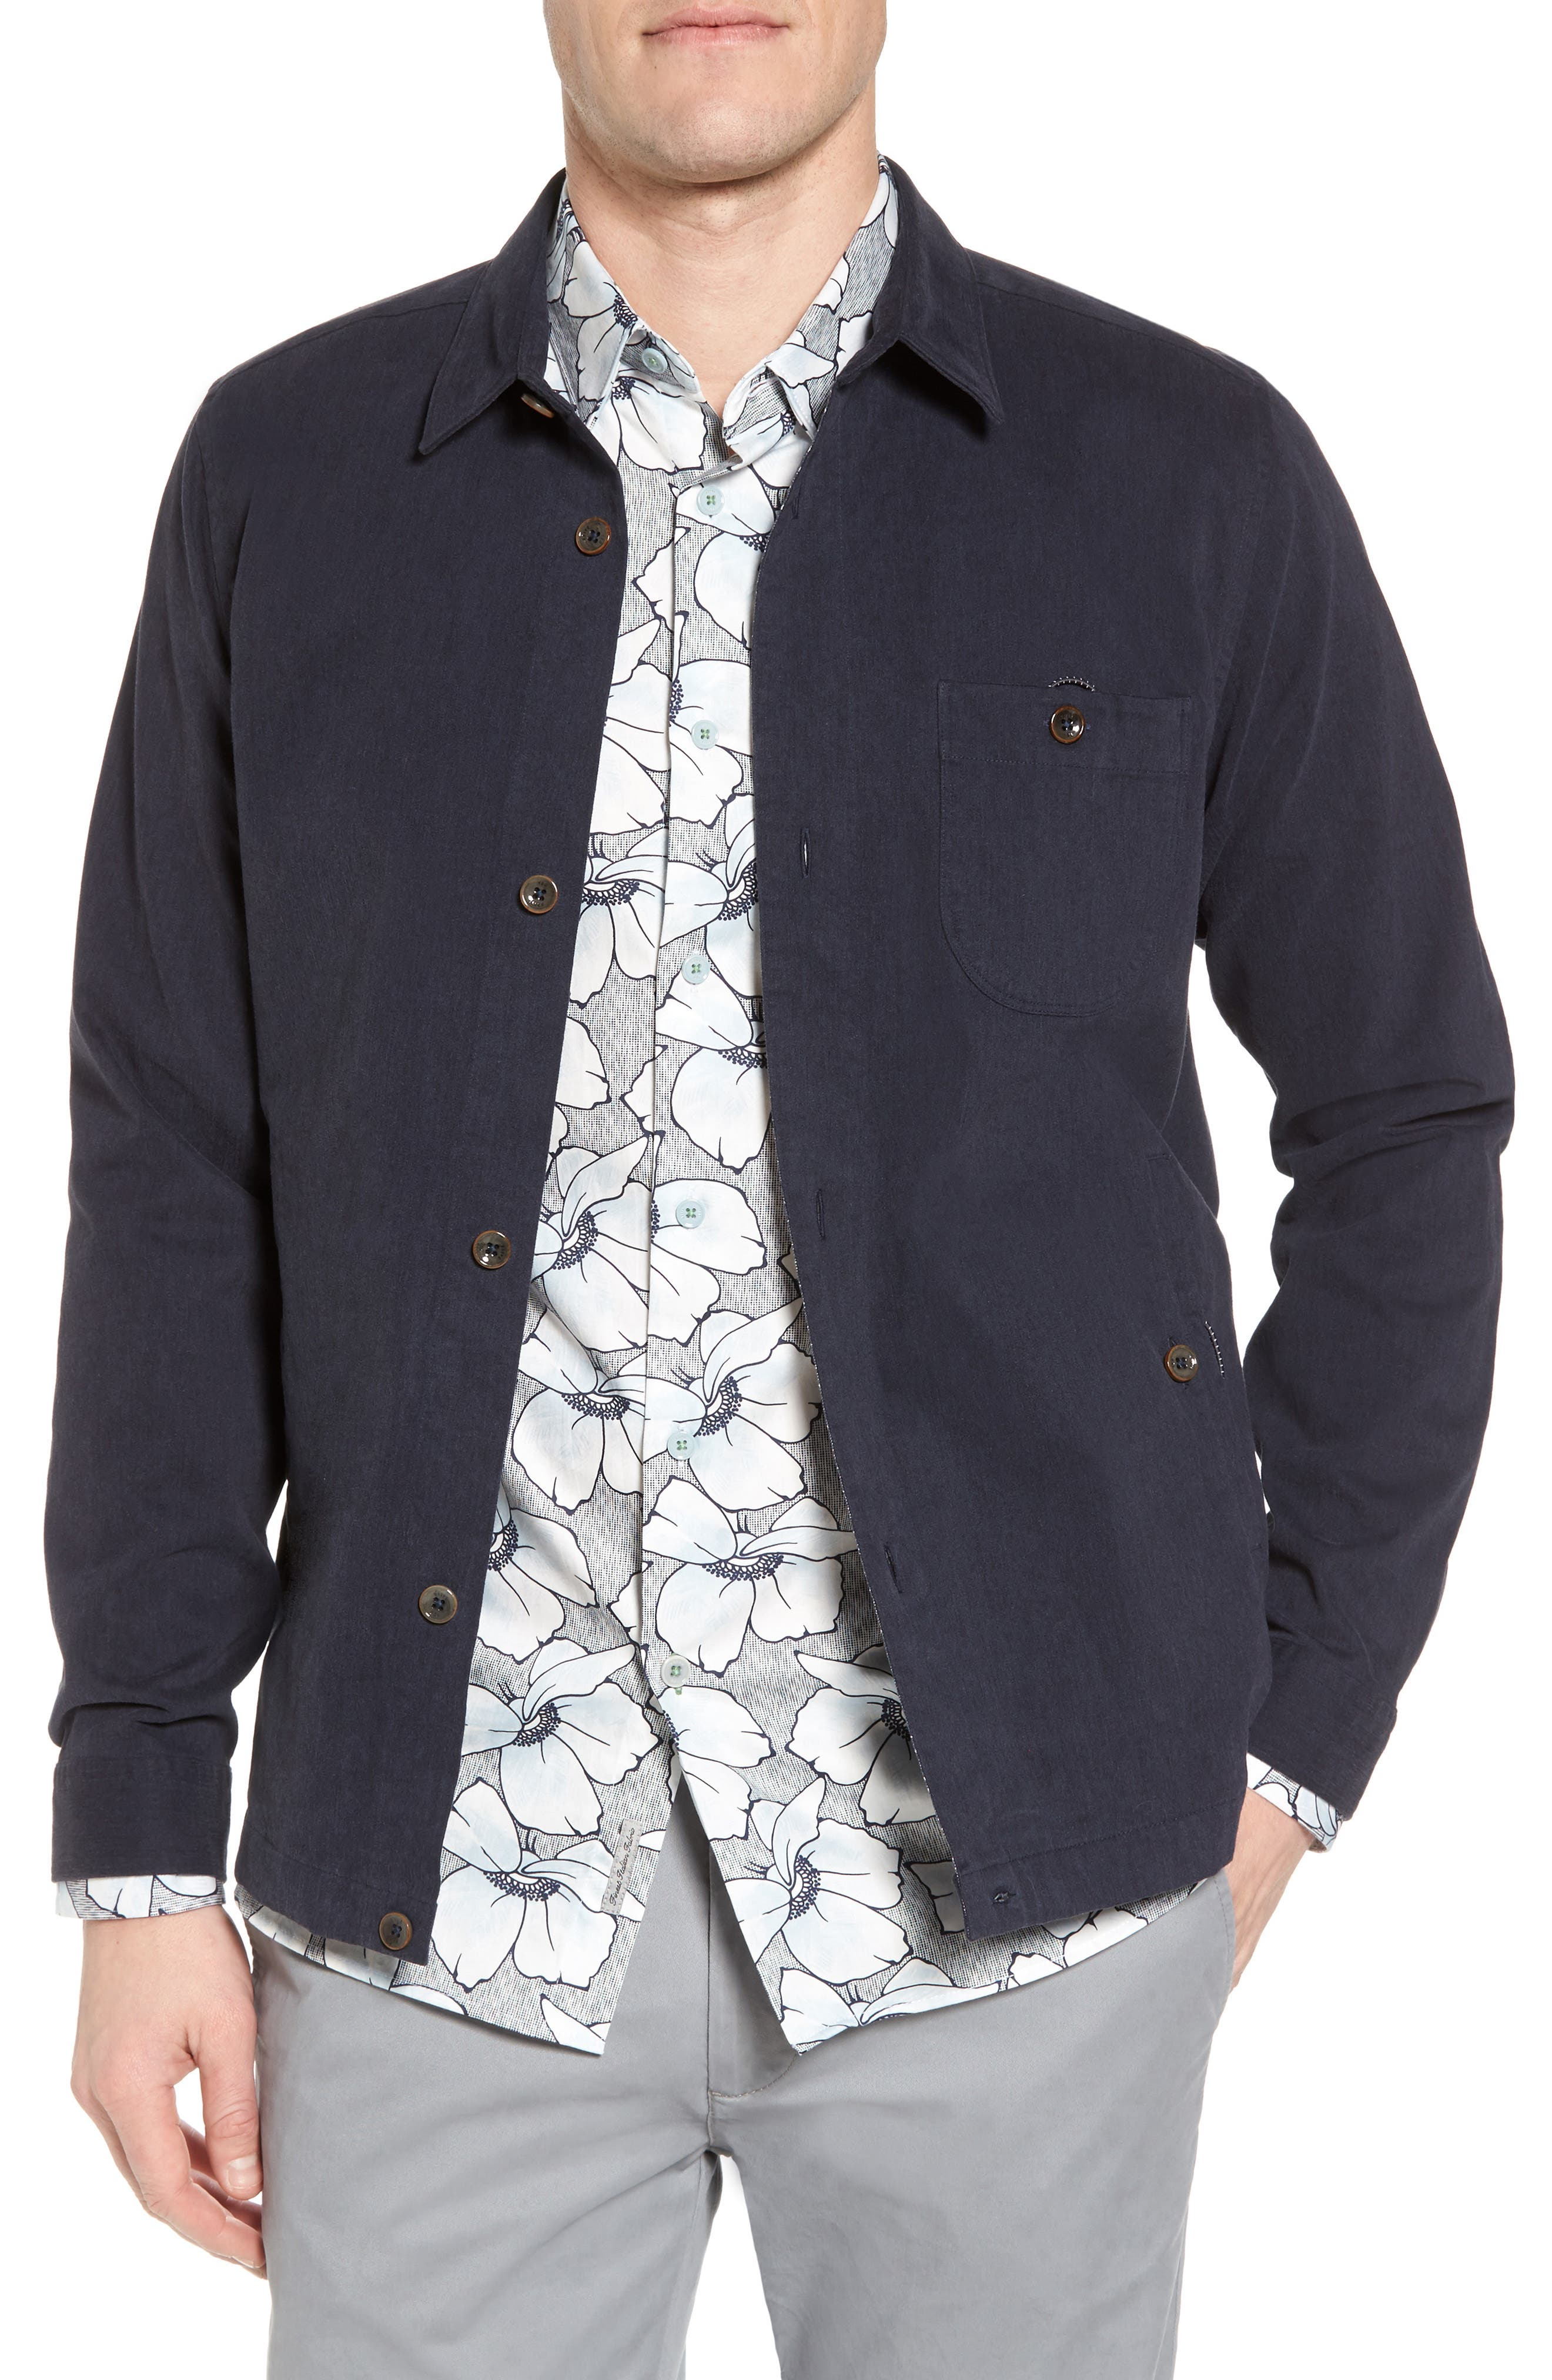 Keebord Shirt Jacket,                         Main,                         color, Navy